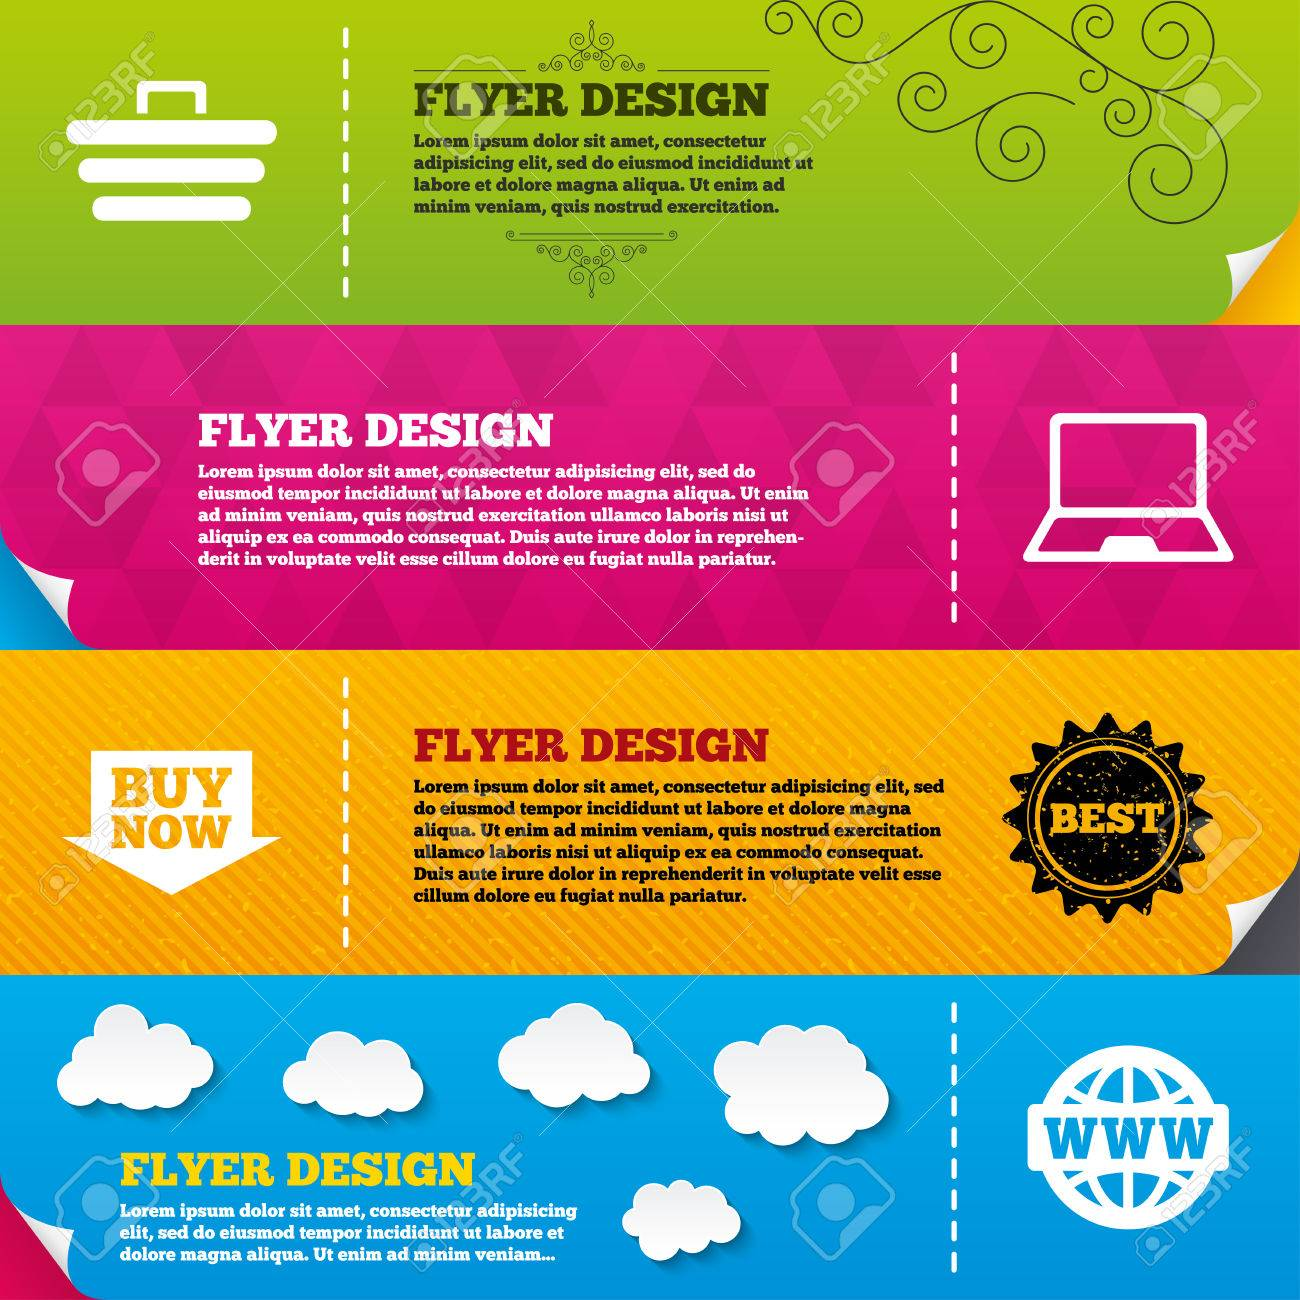 flyer brochure designs online shopping icons notebook pc shopping